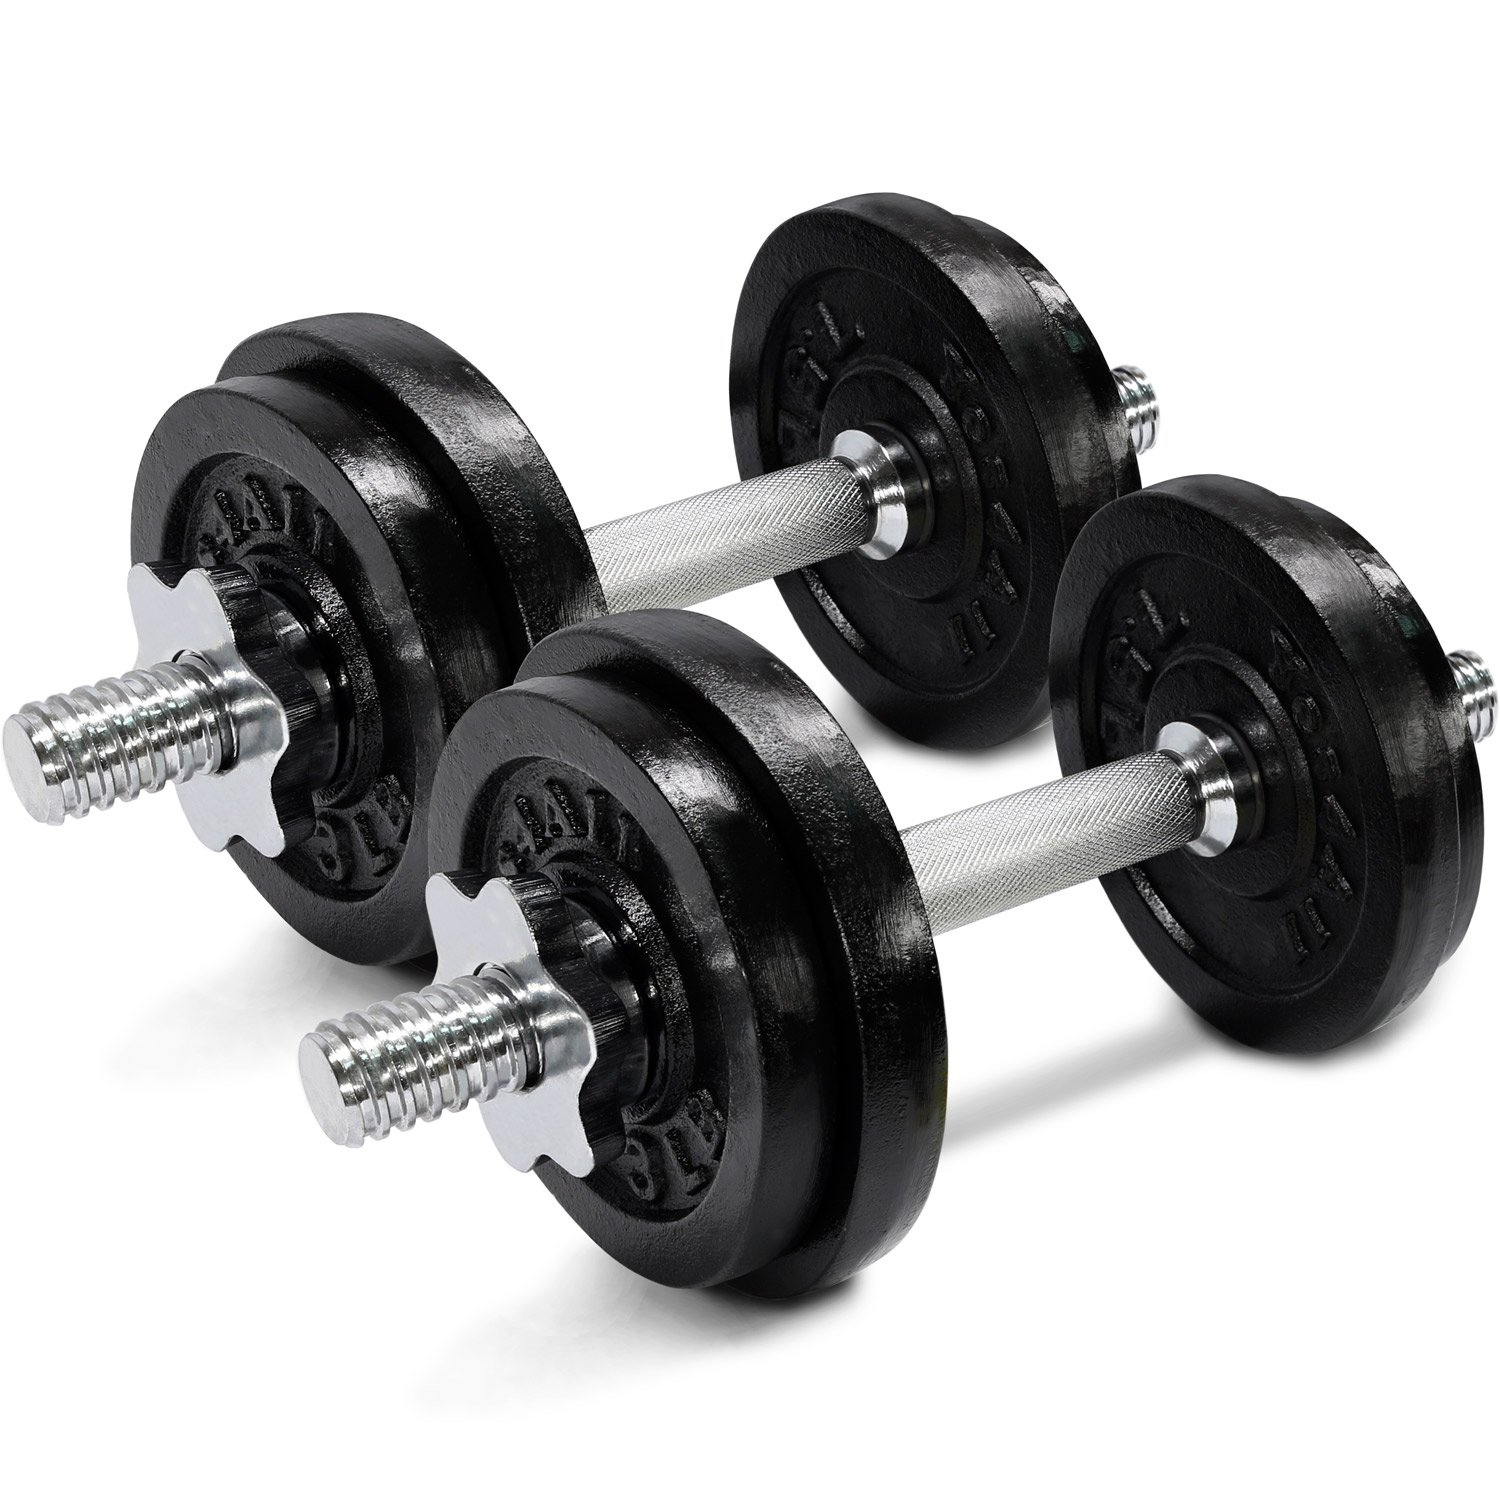 Yes4All Adjustable Dumbbell 40.02 lbs by Yes4All (Image #1)